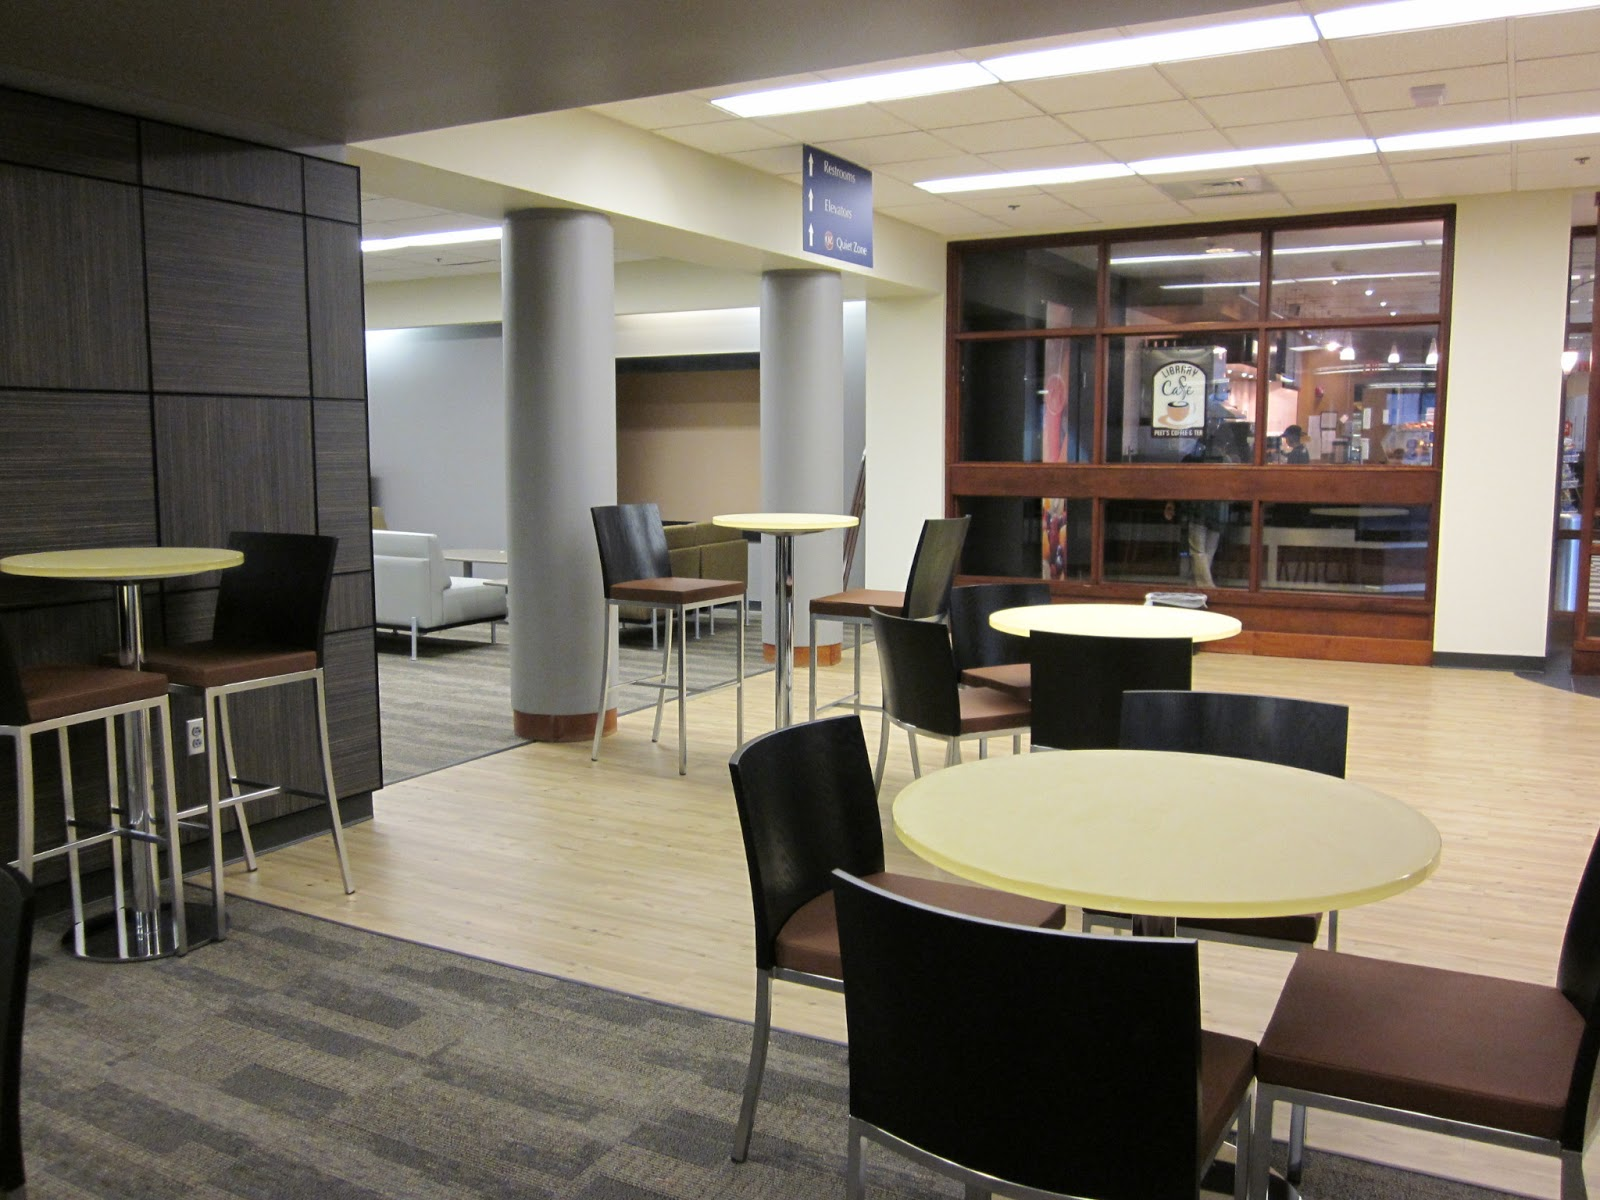 New Learning Spaces And The Role Of Ongoing Research